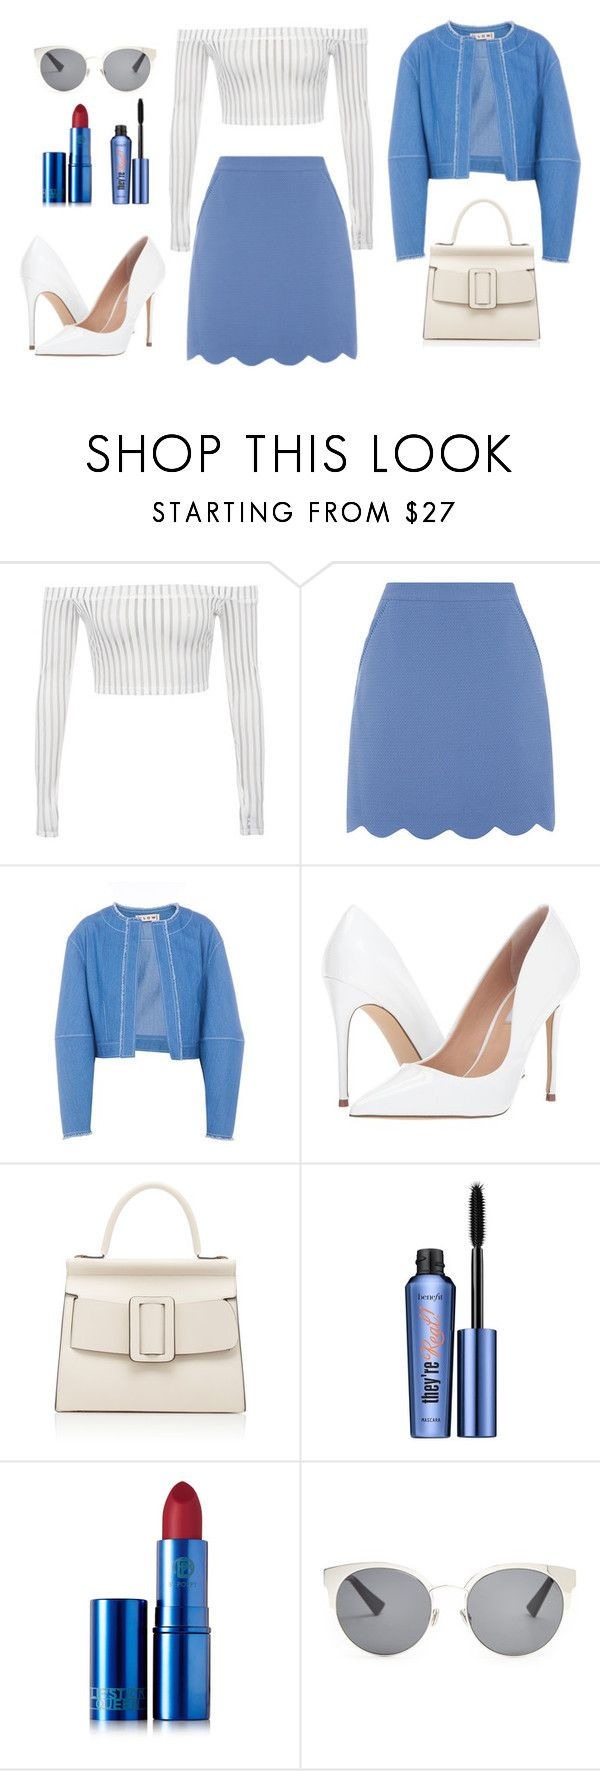 """""""Untitled #153"""" by ejr1323 ❤ liked on Polyvore featuring FLOW the Label, Steve Madden, Boyy, Benefit, Lipstick Queen and Christian Dior"""